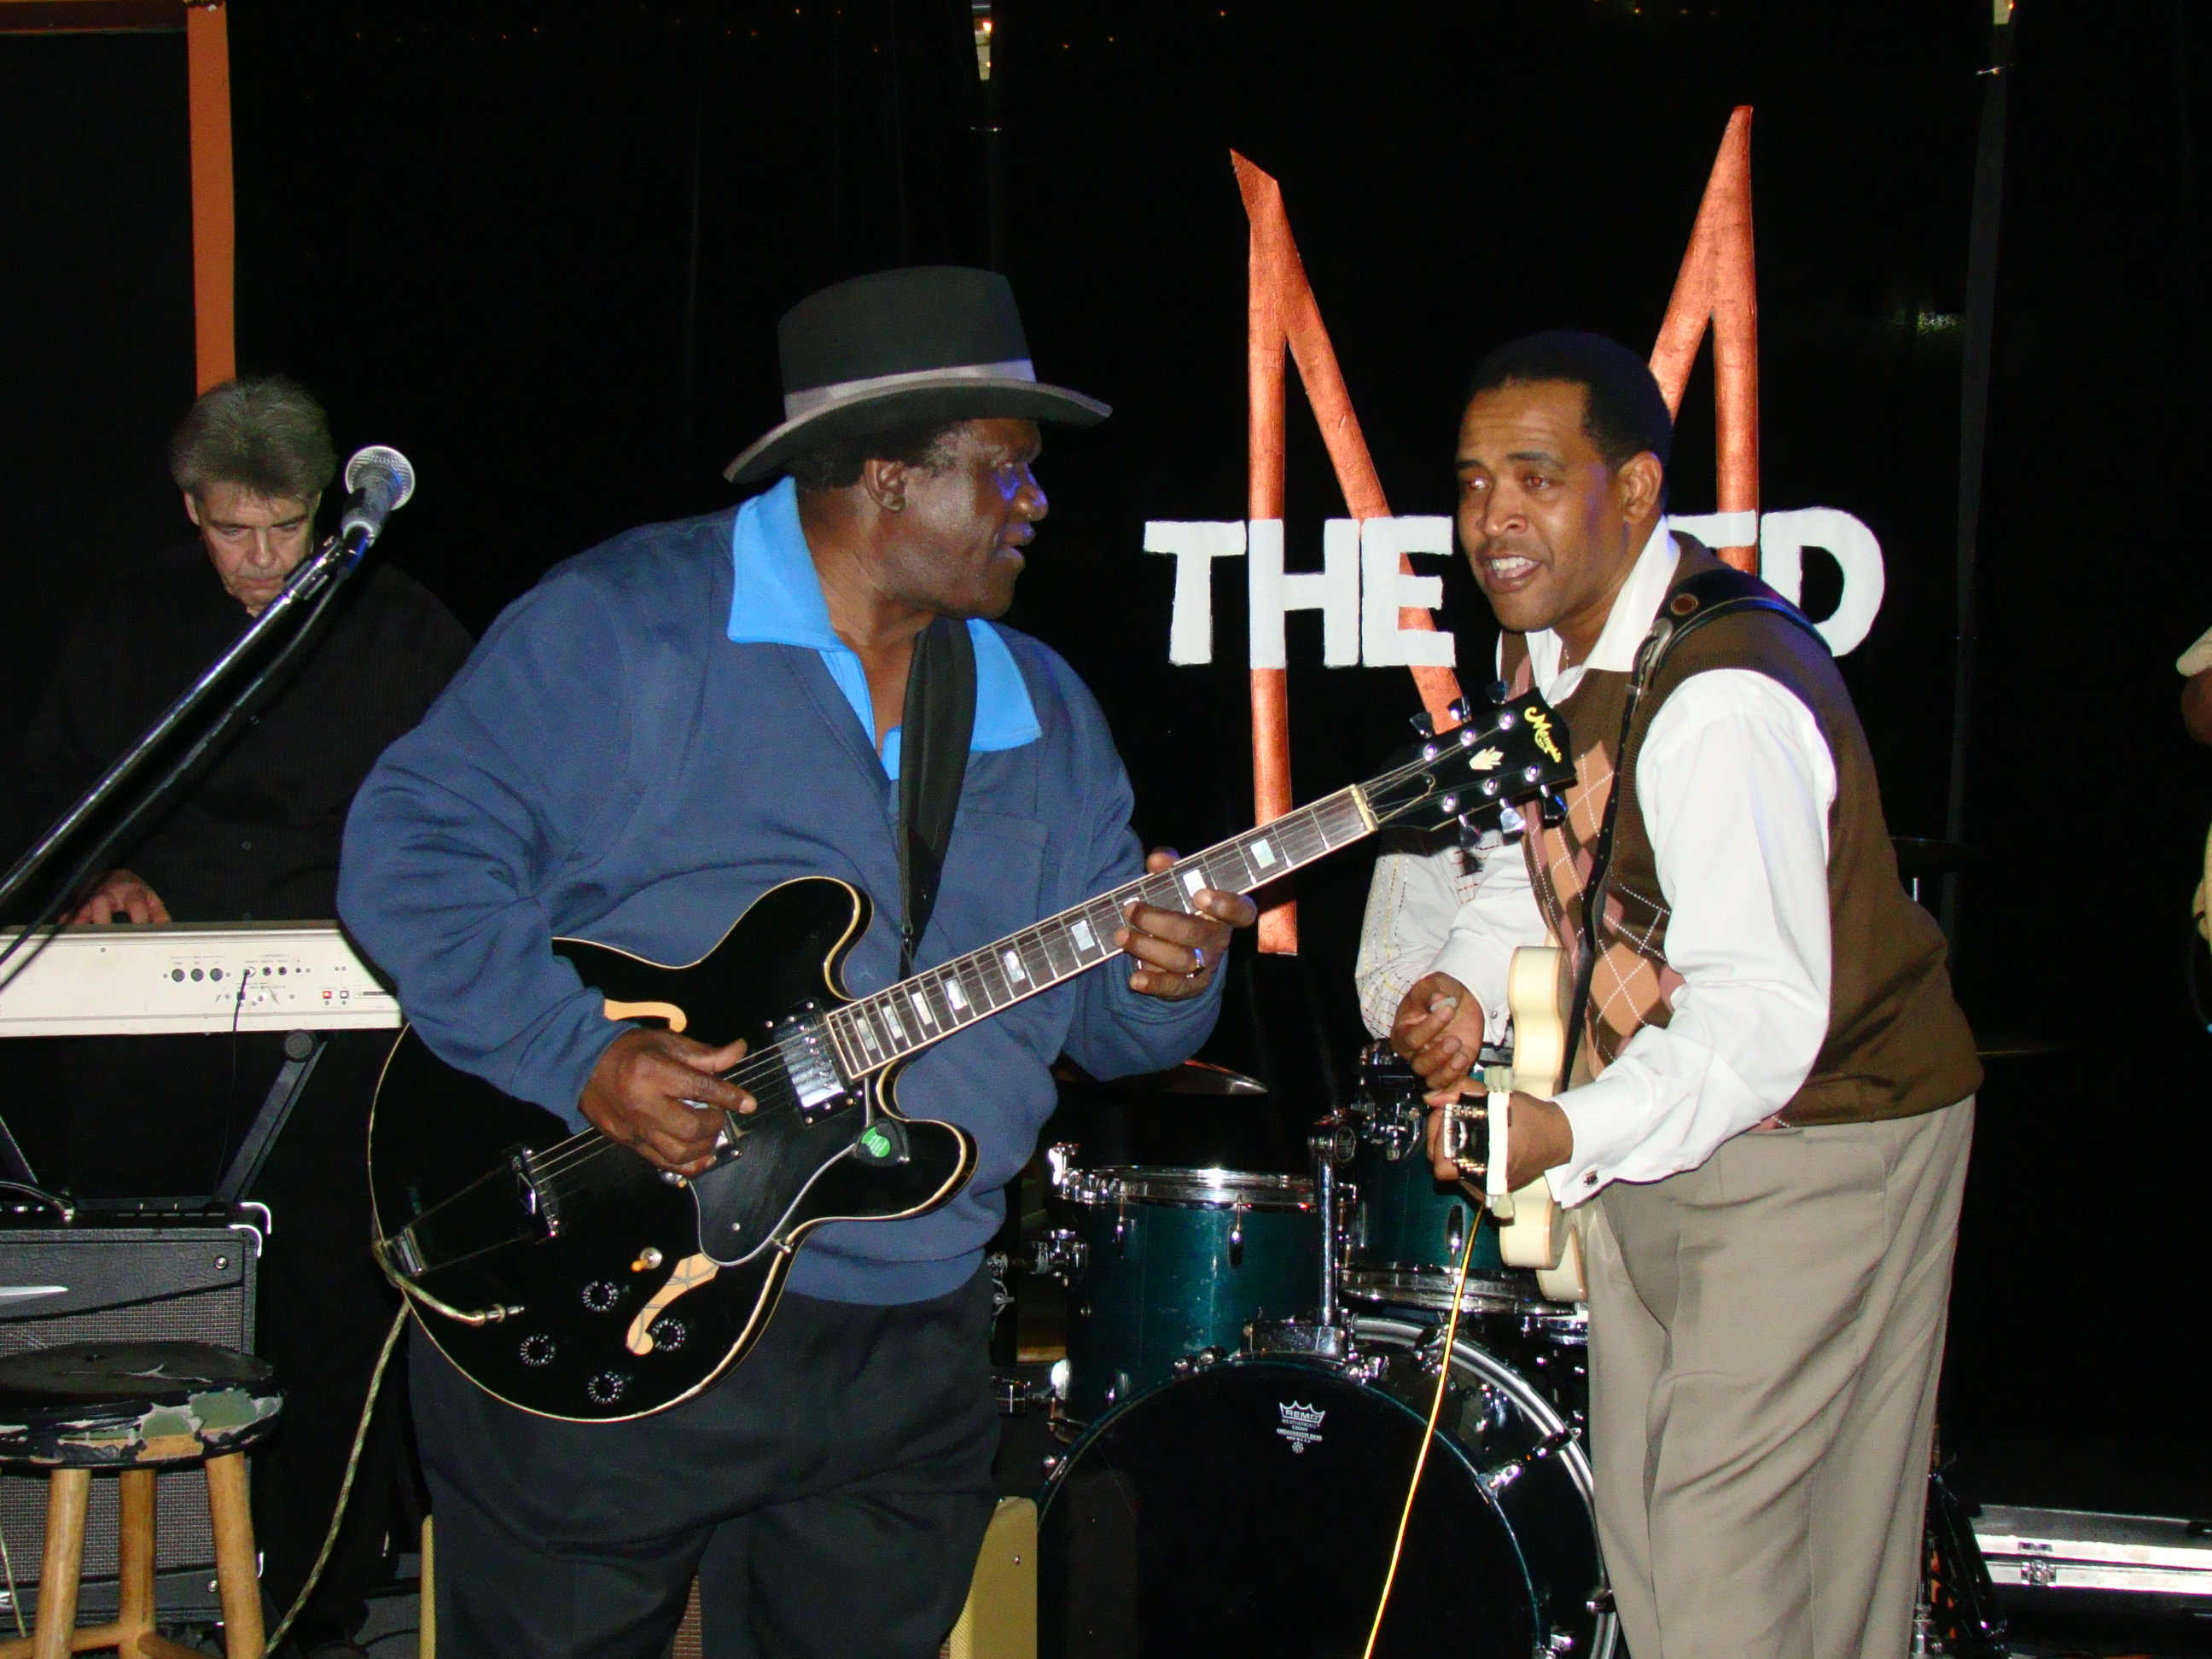 Bluesmen King Edward & Eddie Cotton